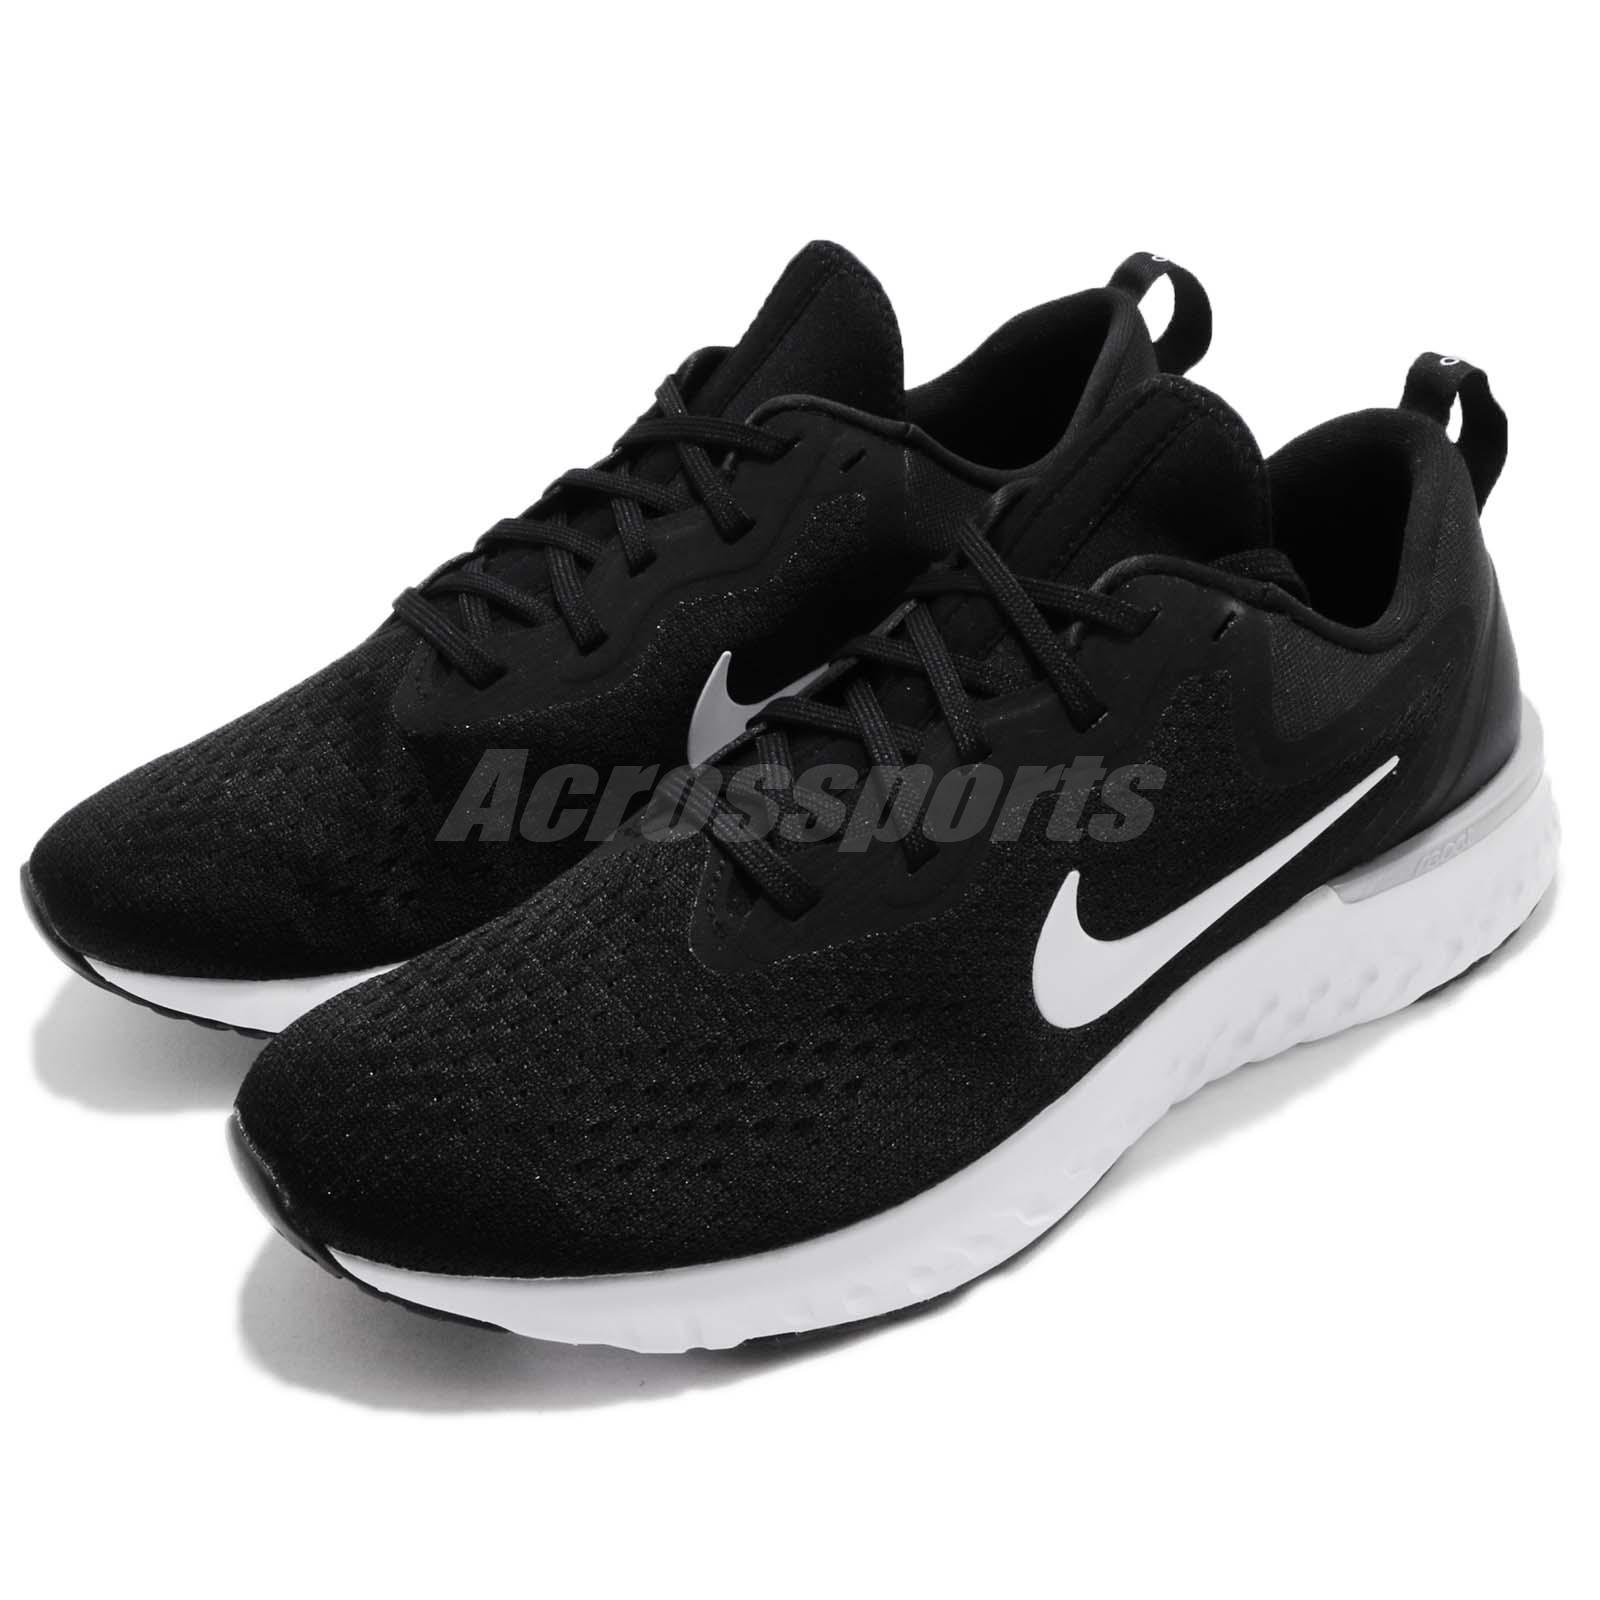 c7c94e203b40 Details about Nike Odyssey React Black White Men Running Shoes Sneakers  AO9819-001